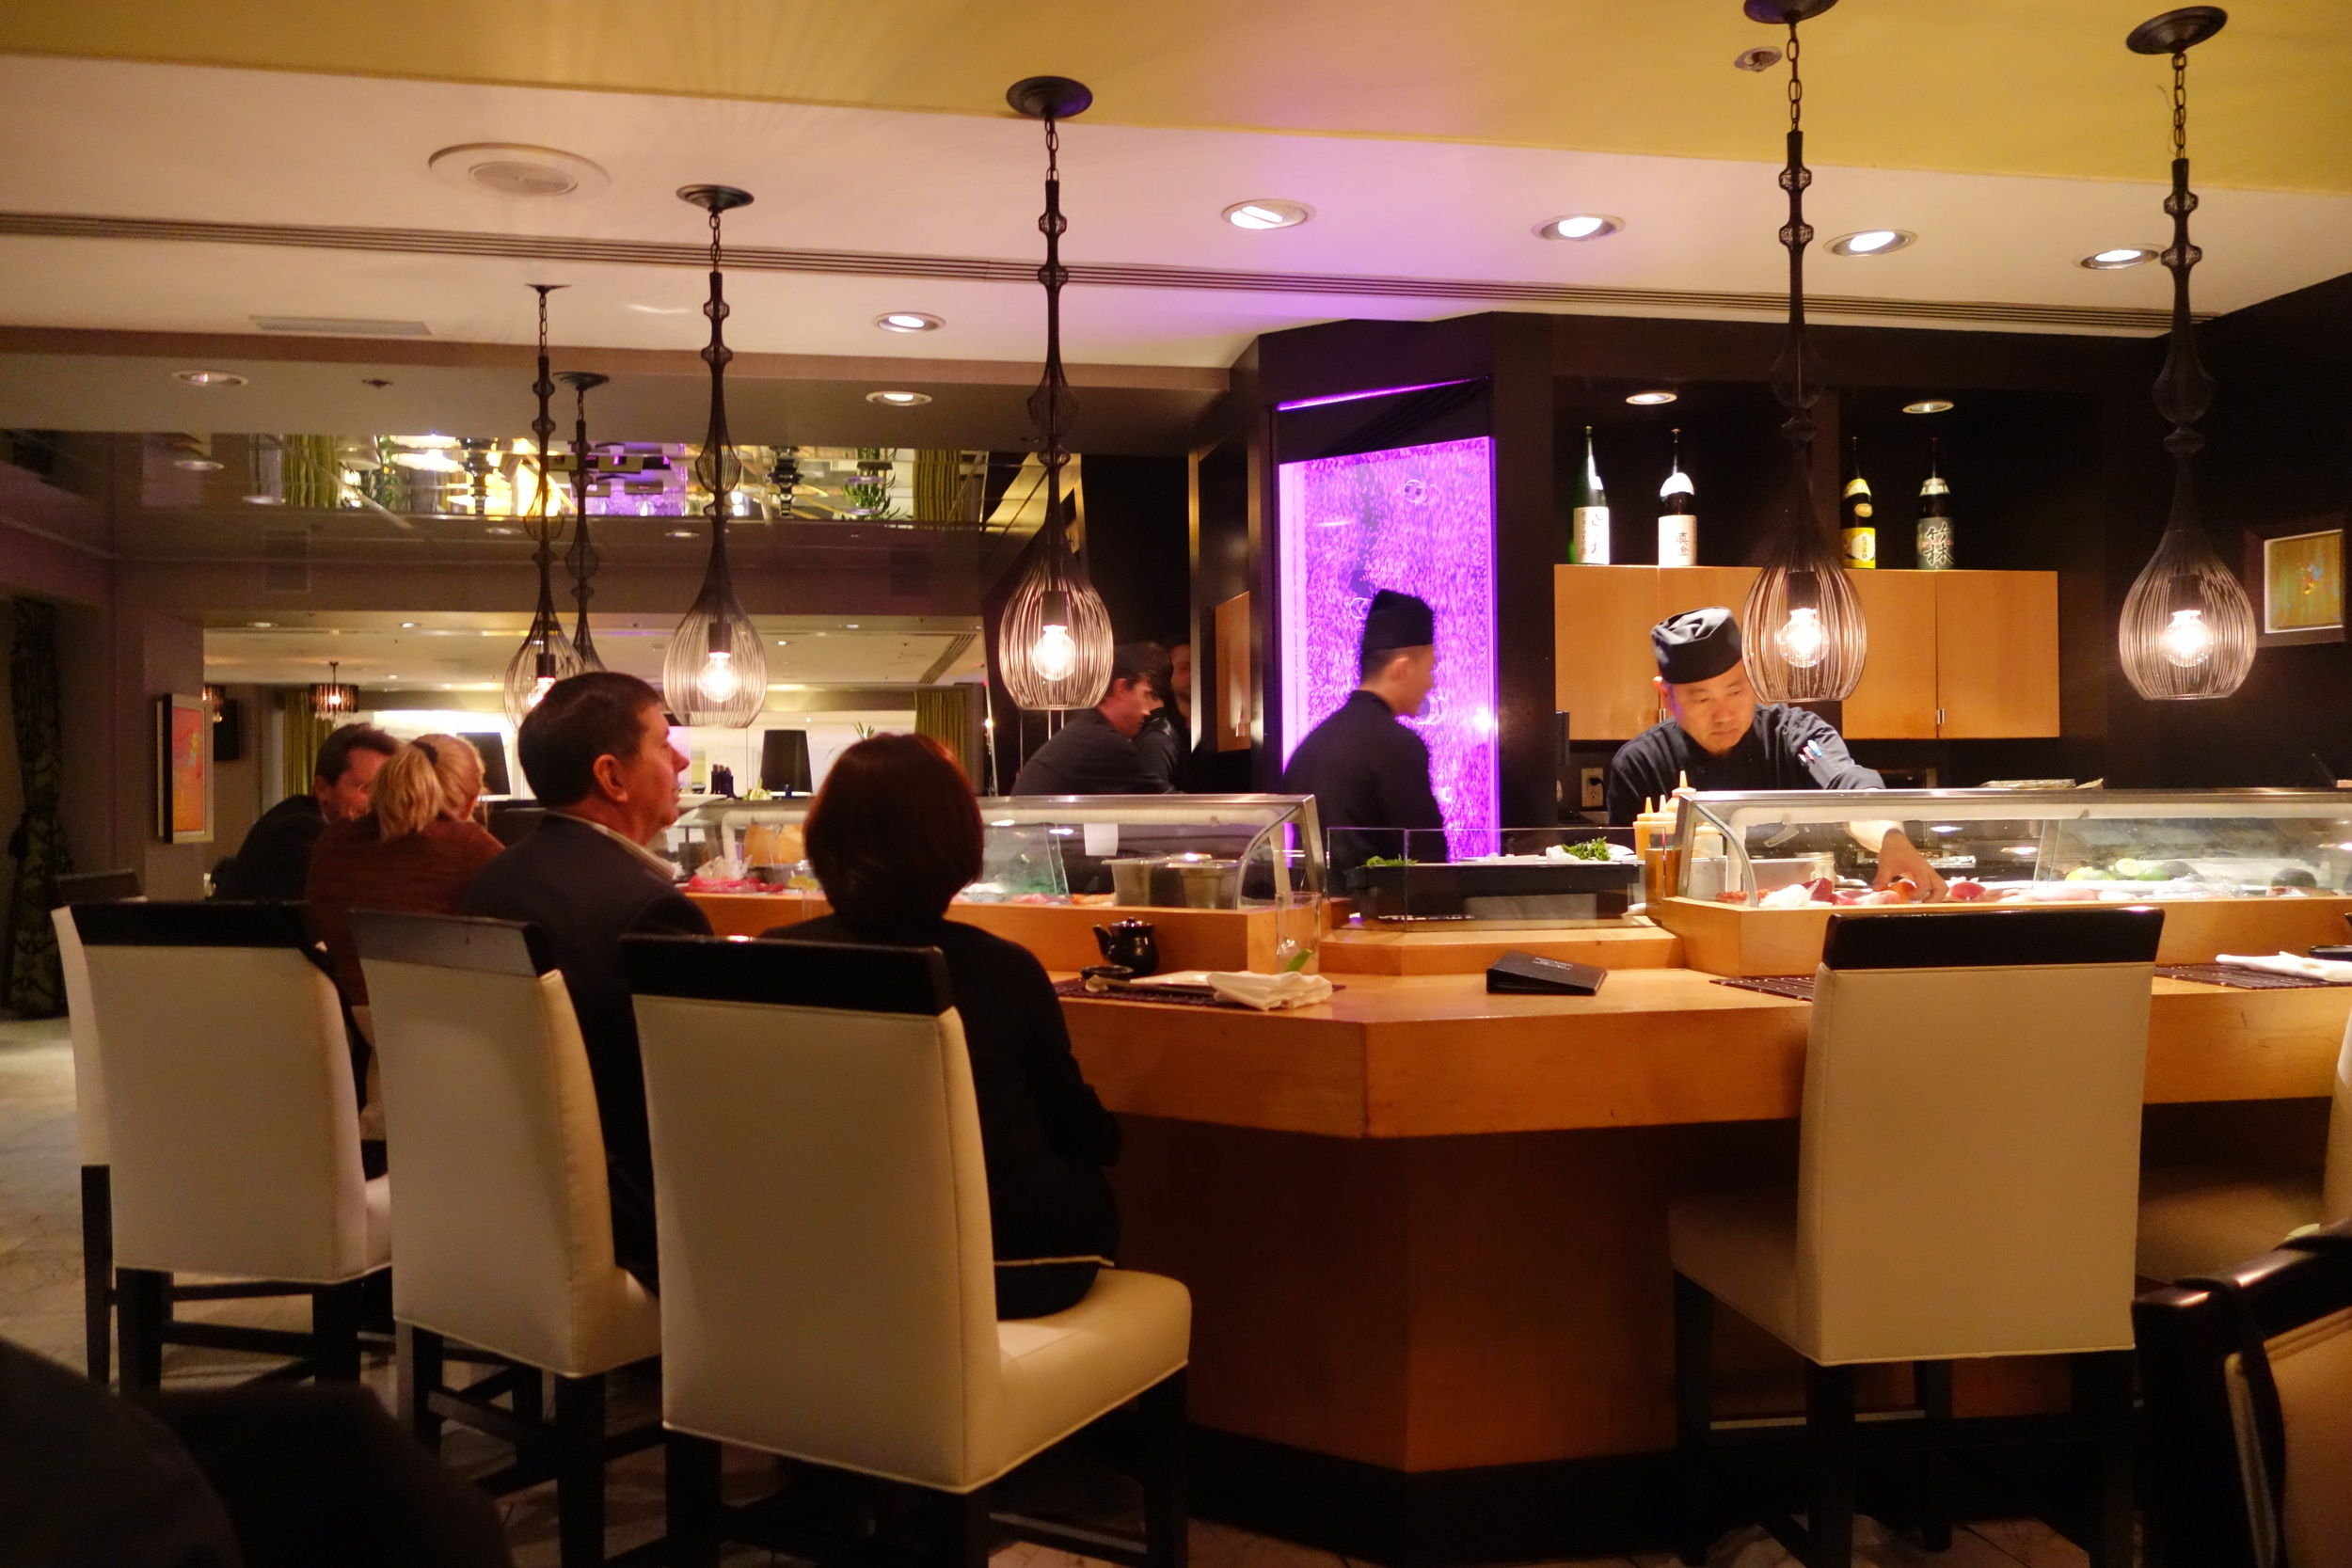 Customers at the Sushi Bar in Anzu Restaurant and Bar.